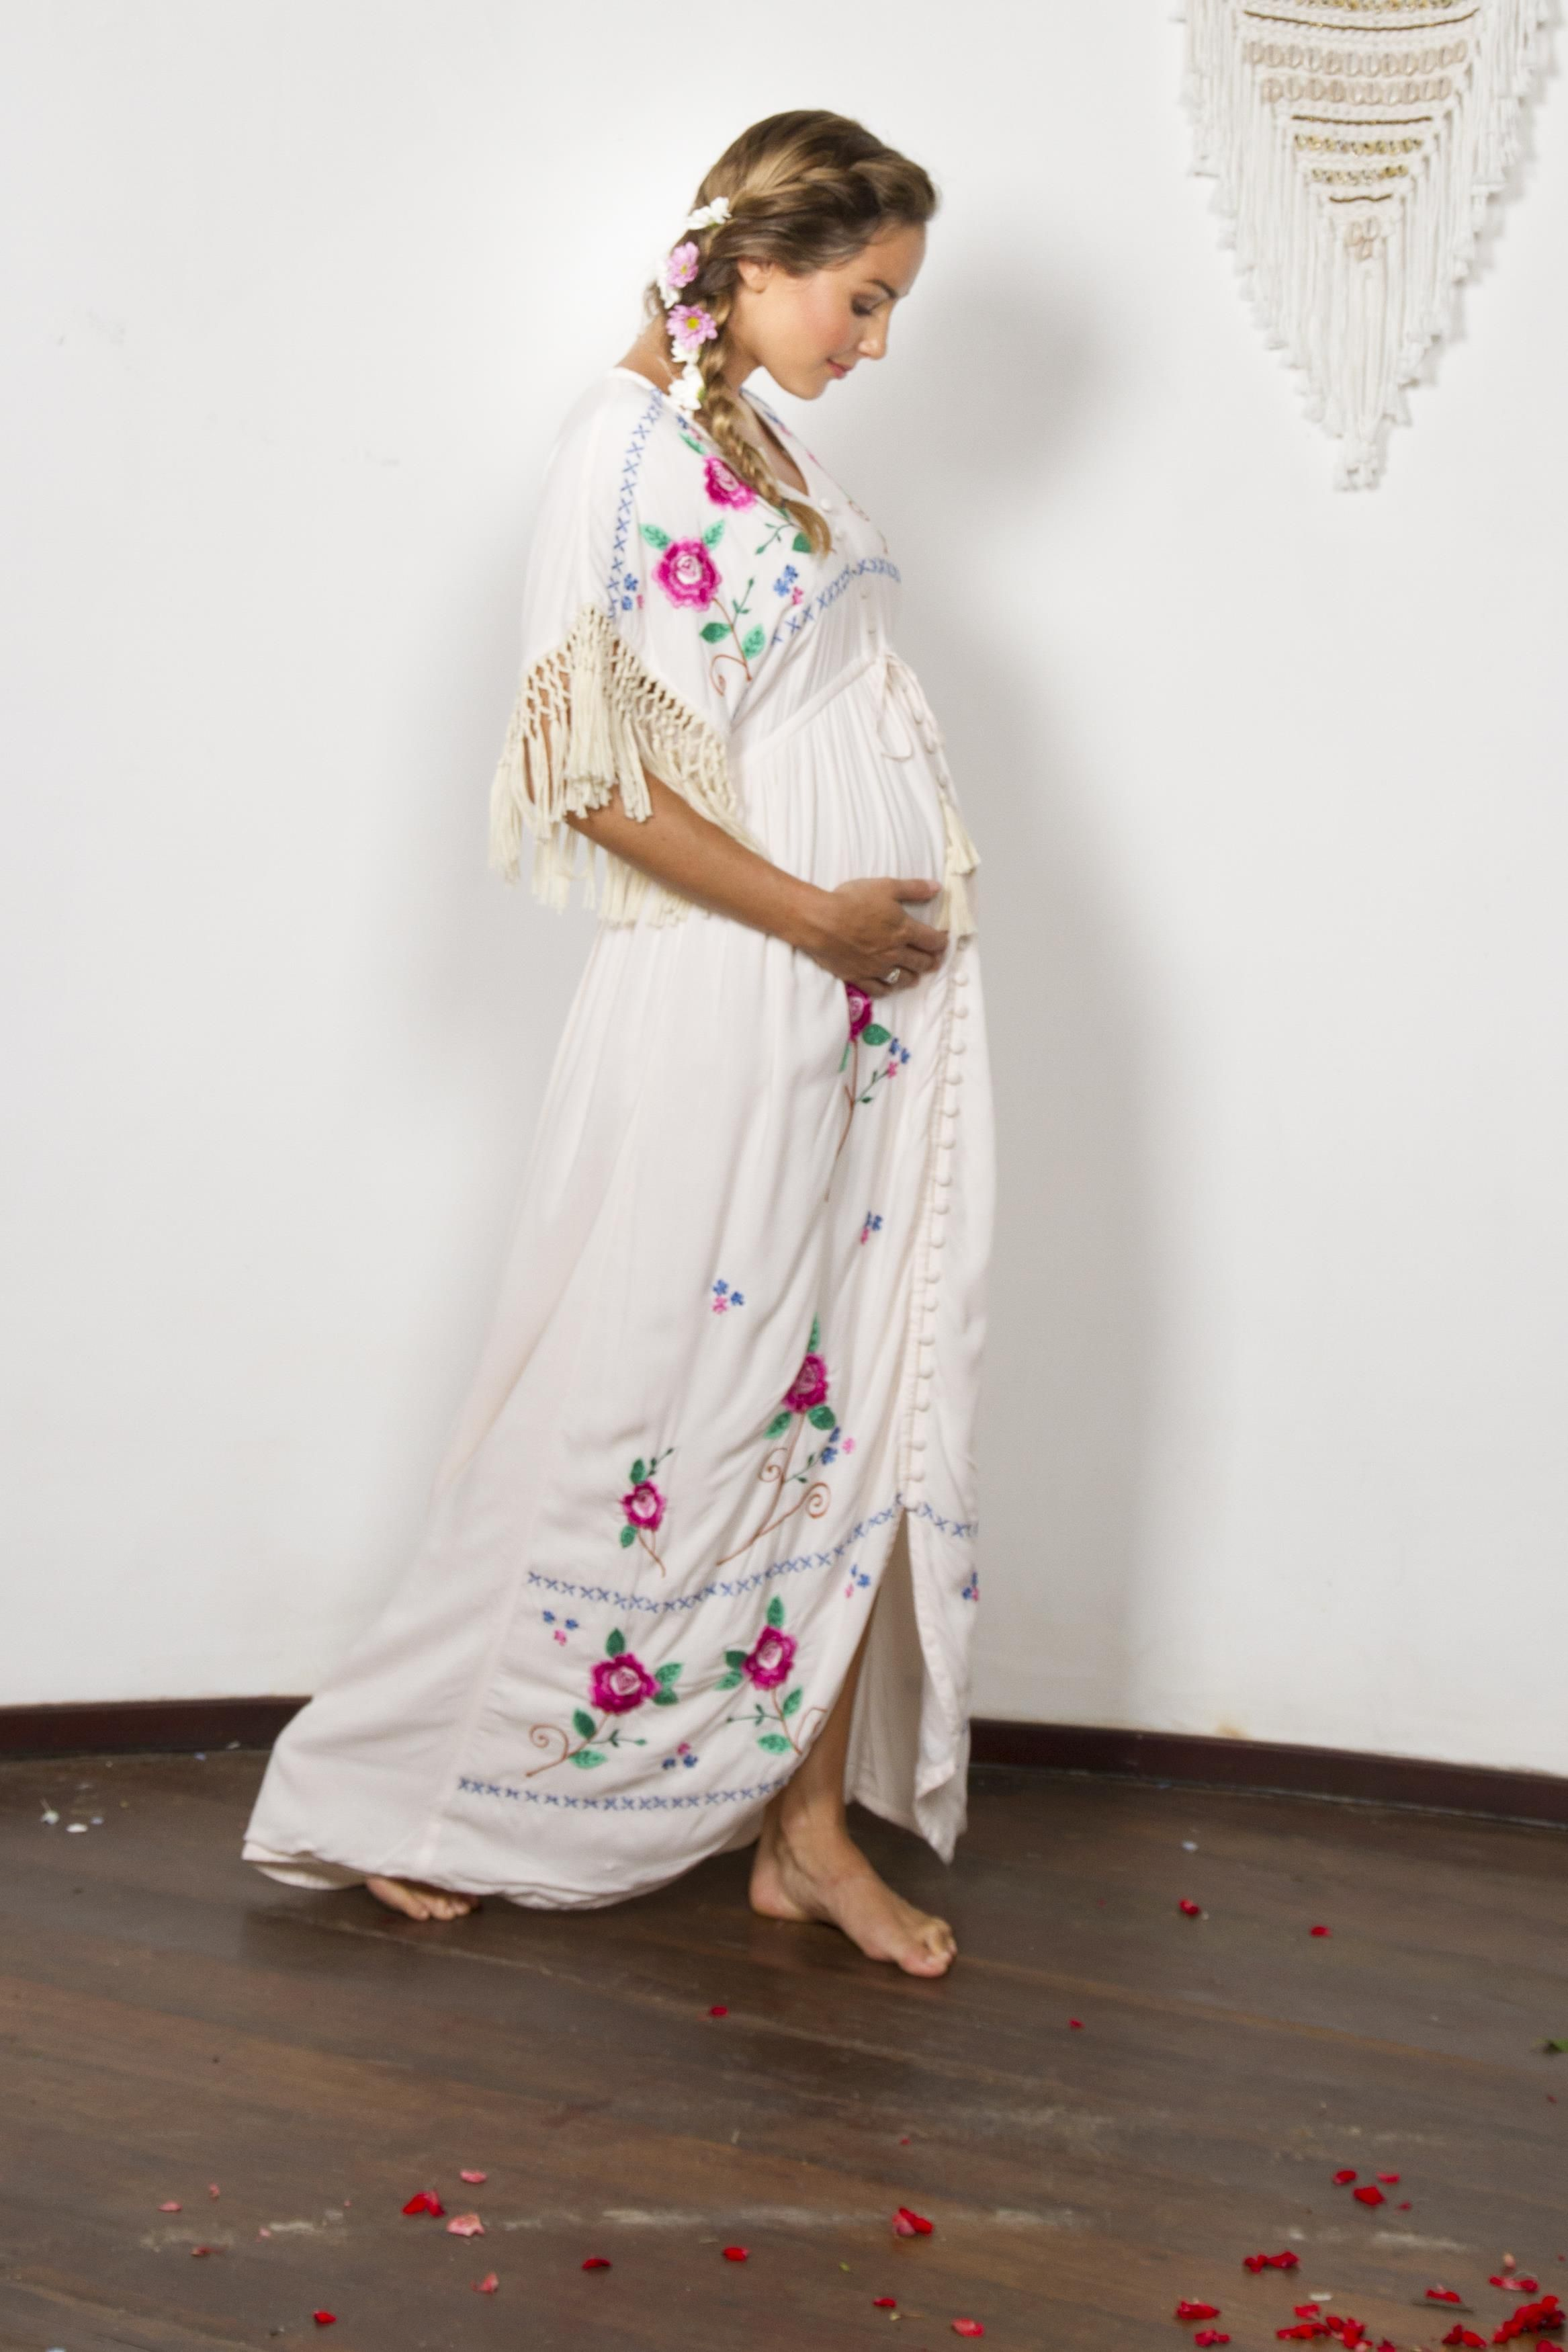 Bojangles button through maternity dustermaxi dresskaftan create your own story in this hand crafted bohemian maternity dress with stunning floral embroidery and macrame tassel sleeve detail ombrellifo Gallery